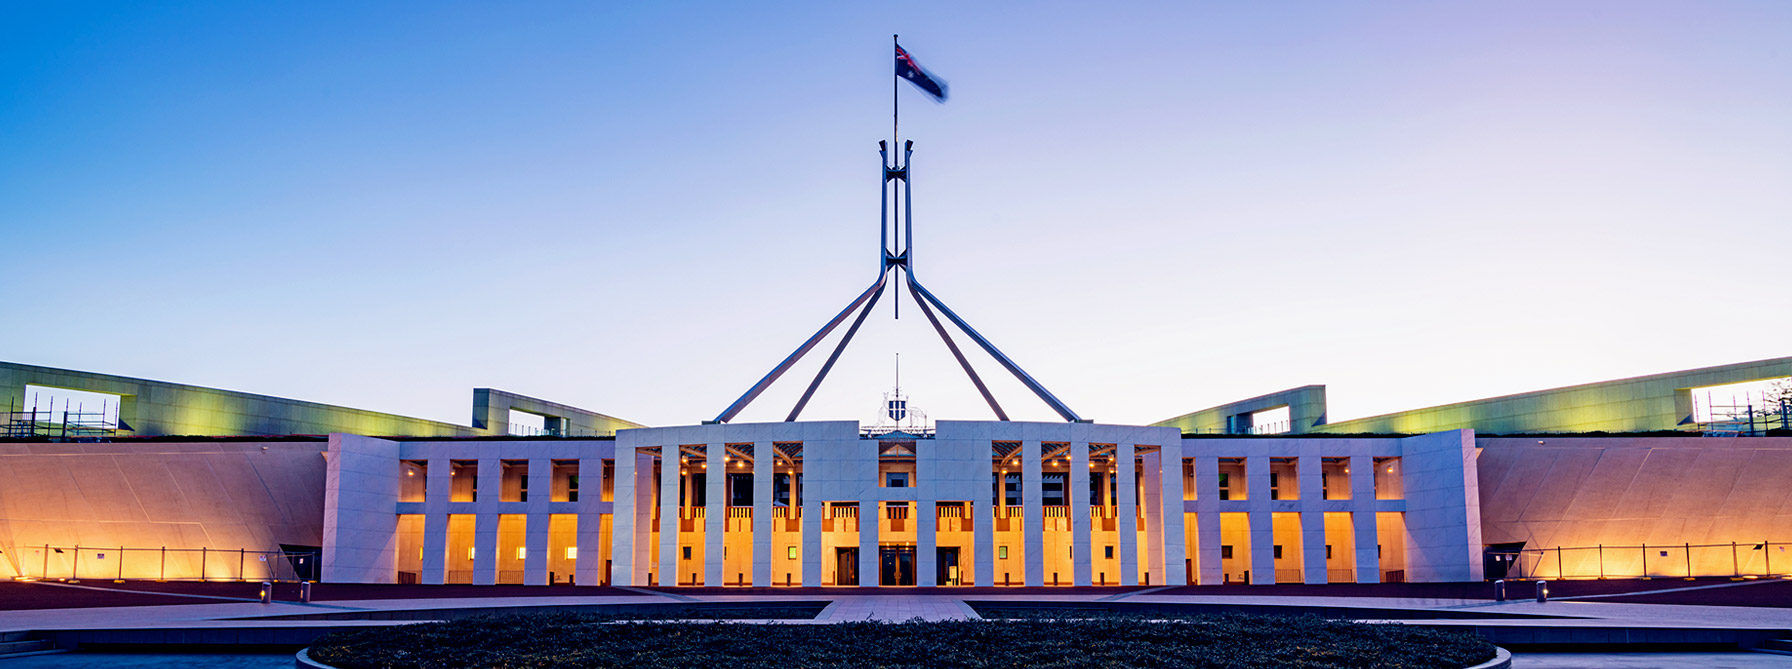 How Aussie banks used content to respond to the federal budget